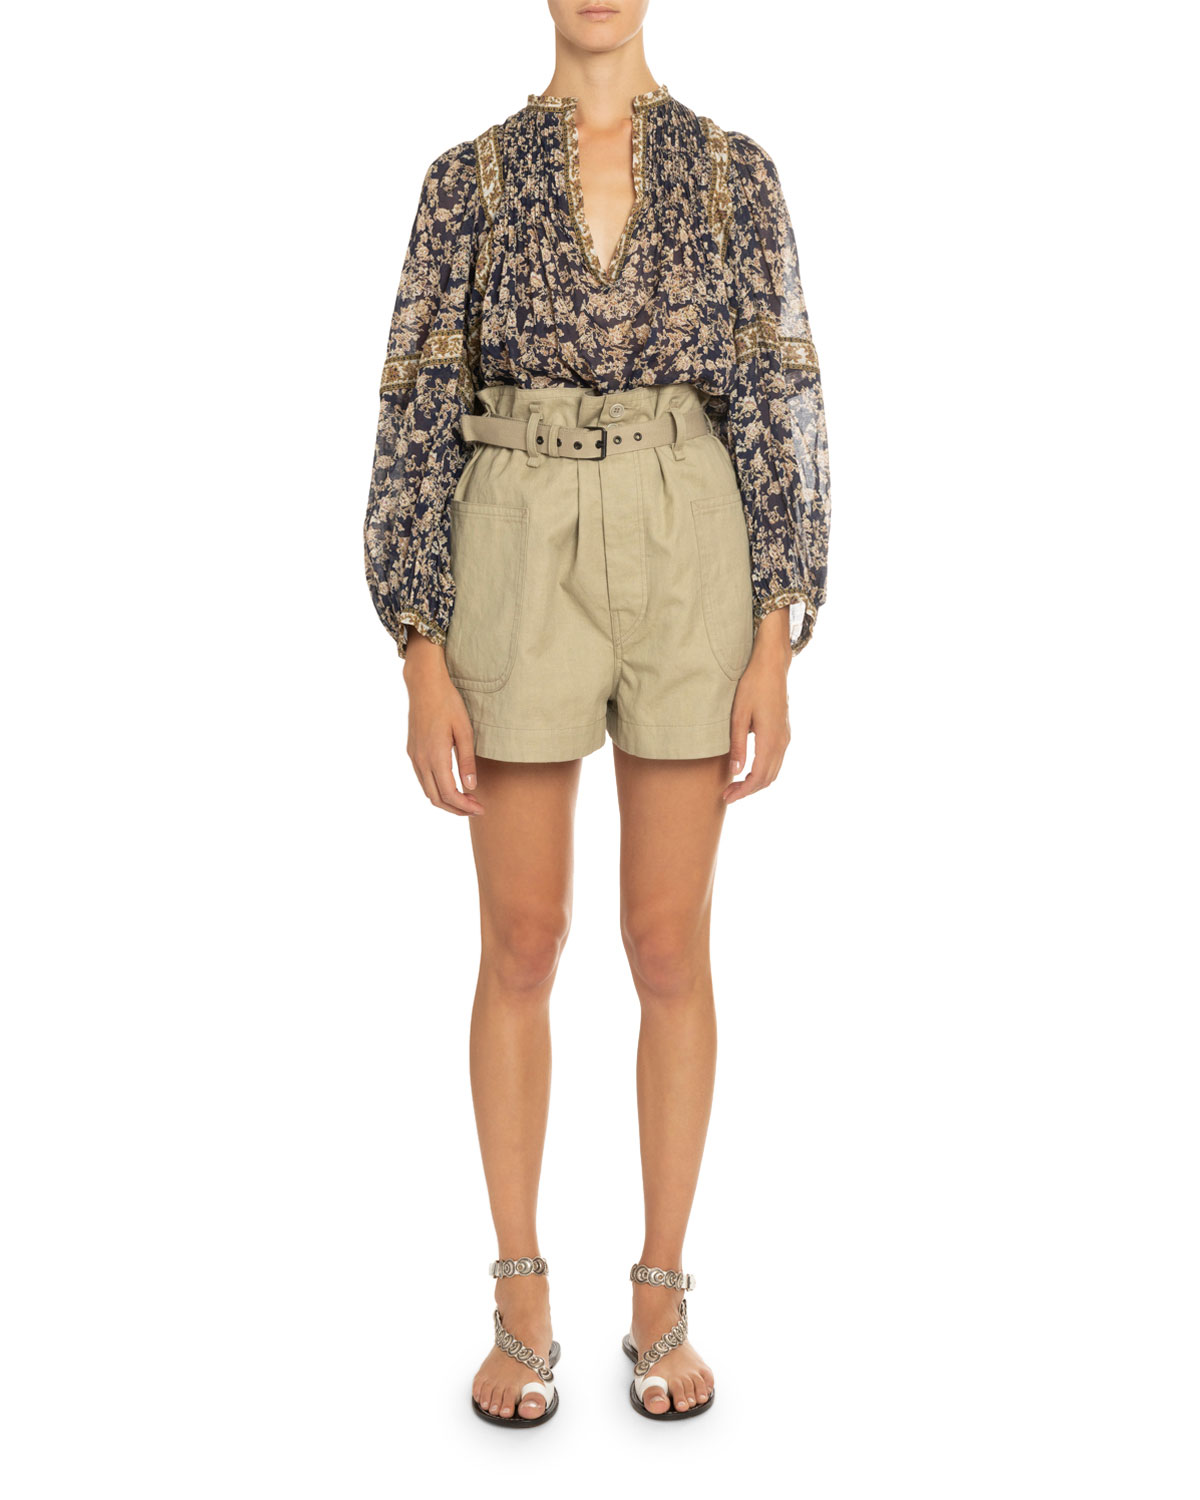 Violette Printed Long Sleeve Top by Etoile Isabel Marant